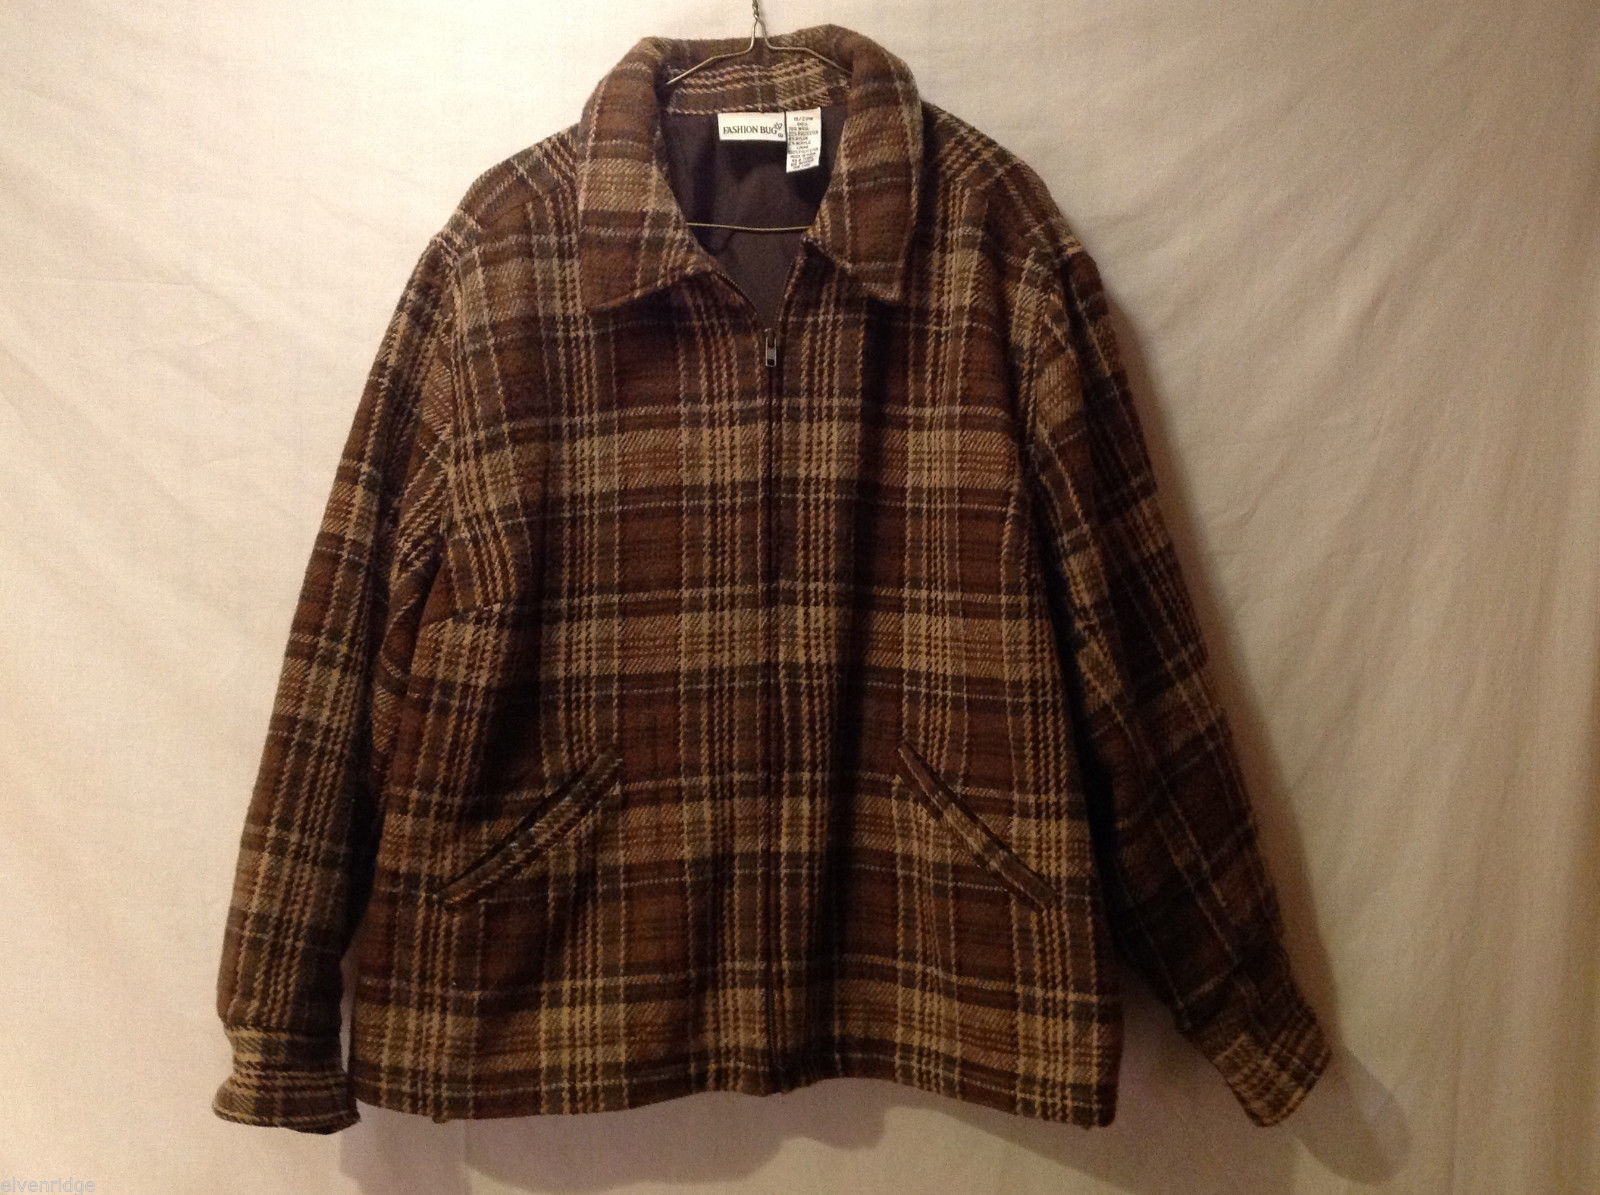 Fashion Bug Women's Size 18-20 Zipper Jacket Plaid Tweed Brown & Tan Wool Blend